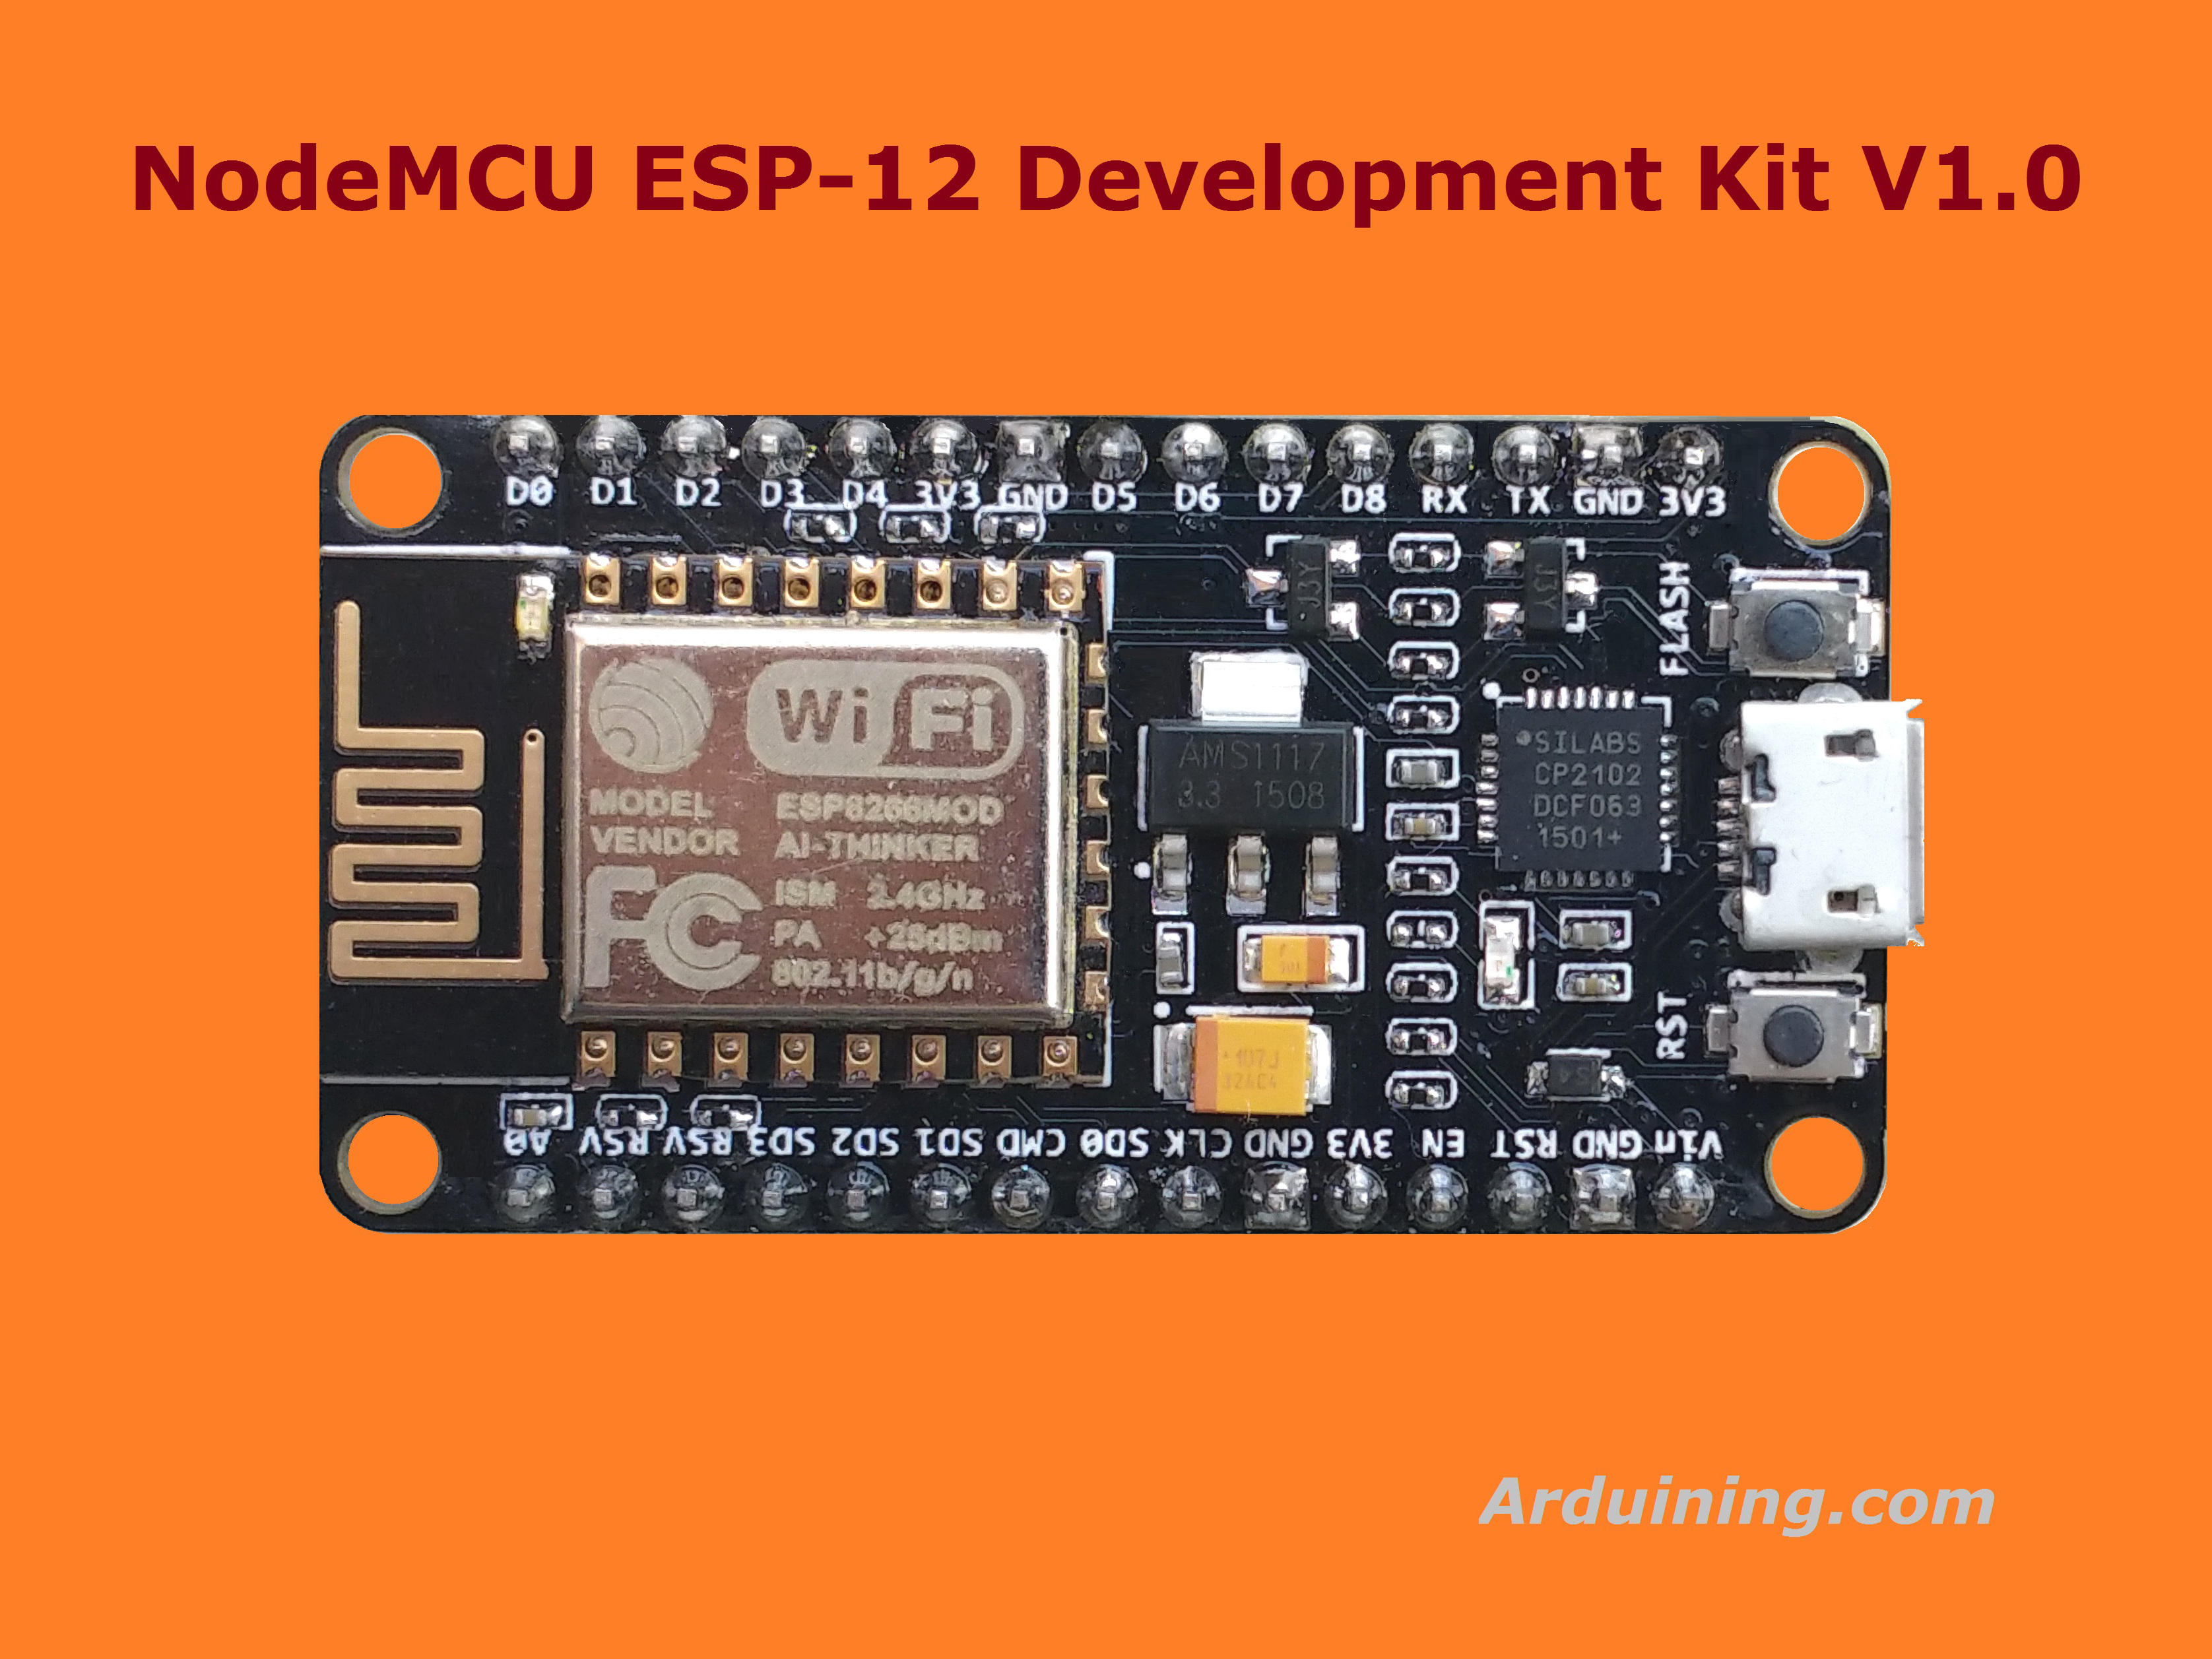 Usb 4 Wire Color besides Working With Hc05 Hc06 To Configure And Implementations together with File SATA power cable additionally Nodemcu Esp 12 Development Kit V1 0 furthermore Wiring Sim900 Gsmgprs Shield With Ttl Uart And Arduino. on usb to serial pinout diagram